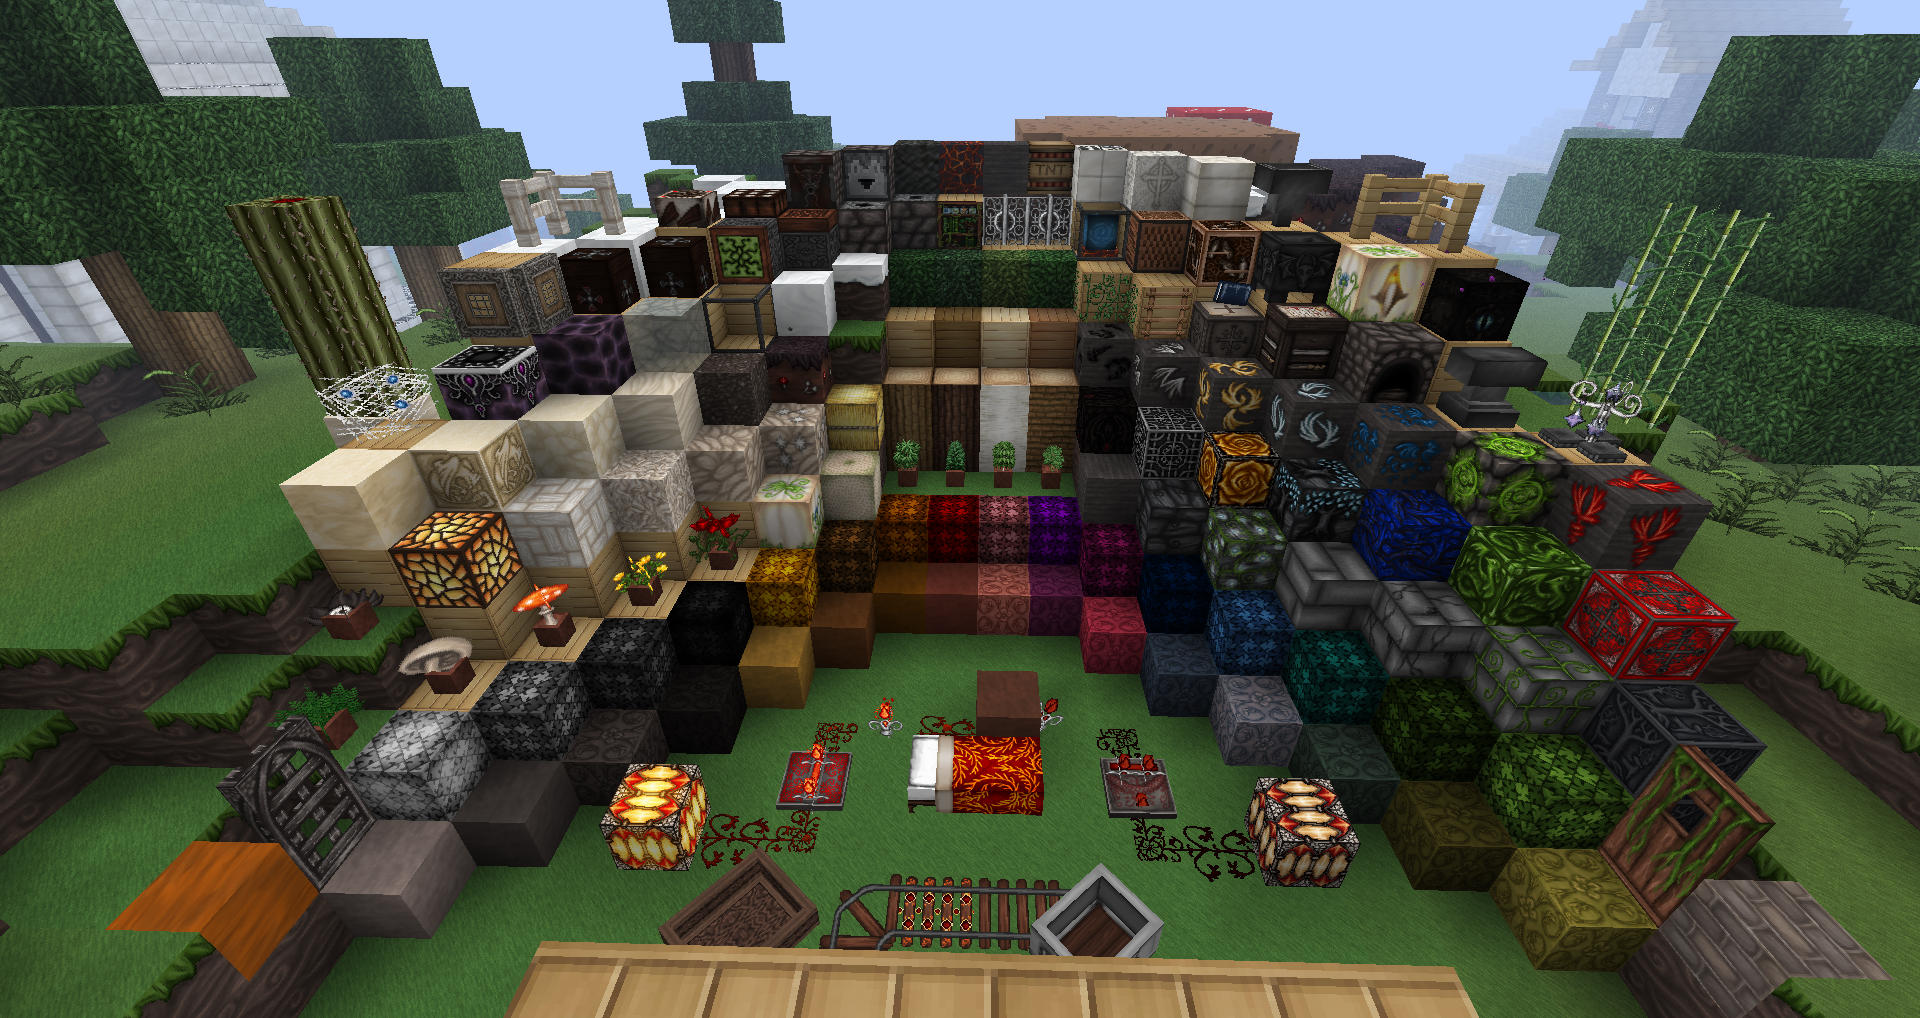 Files Jadedcat S Modded Mixpack Texture Packs